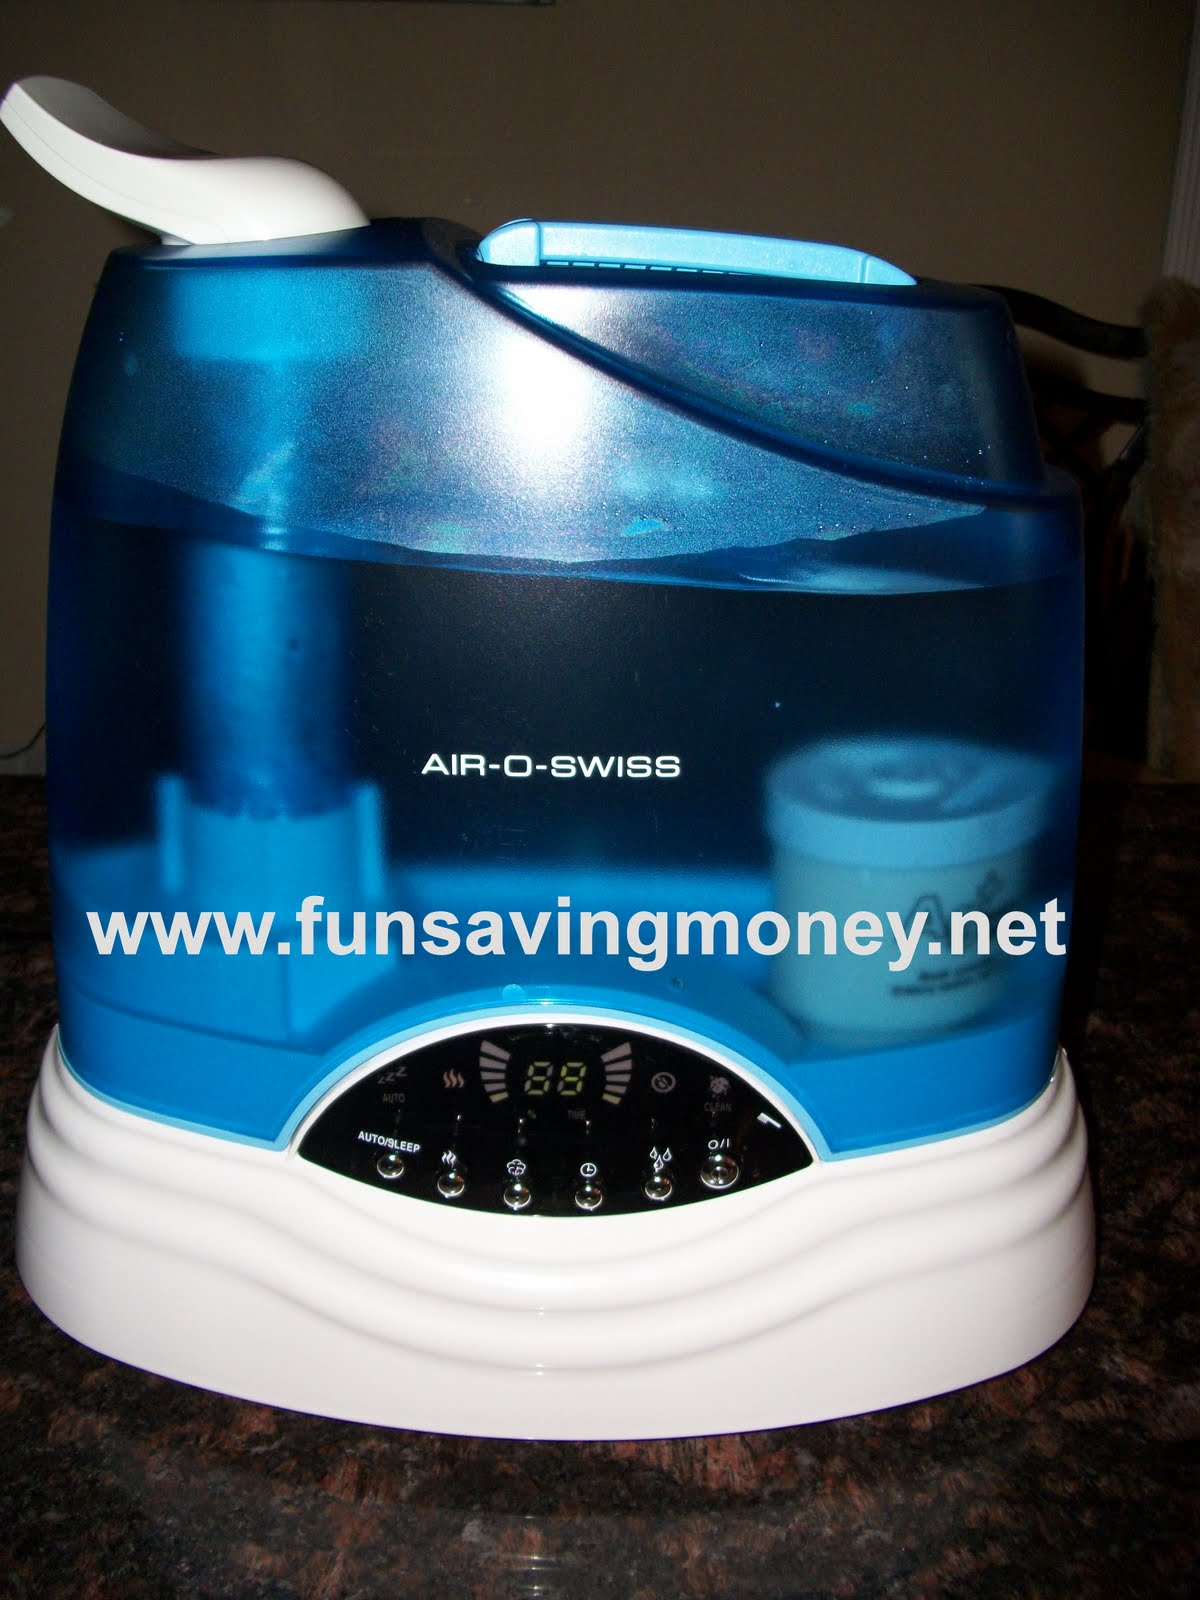 air o swiss humidifier. Black Bedroom Furniture Sets. Home Design Ideas